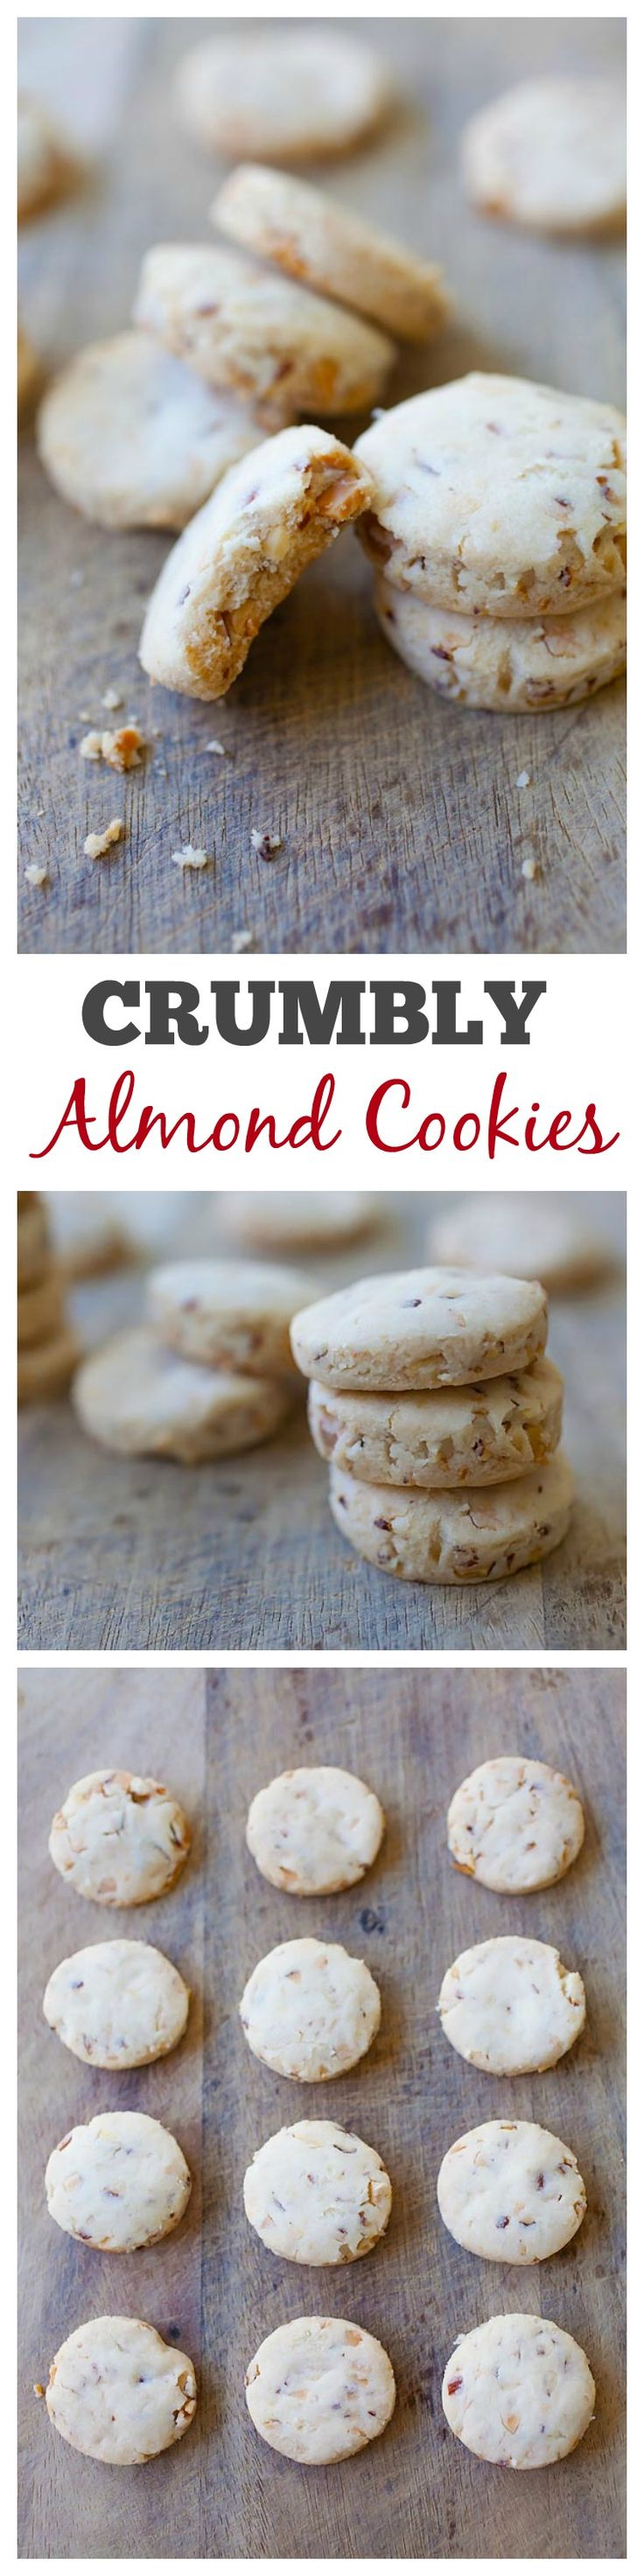 Super crumbly almond cookies with chopped almonds in the cookies. They're so good you won't stop eating | rasamalaysia.com